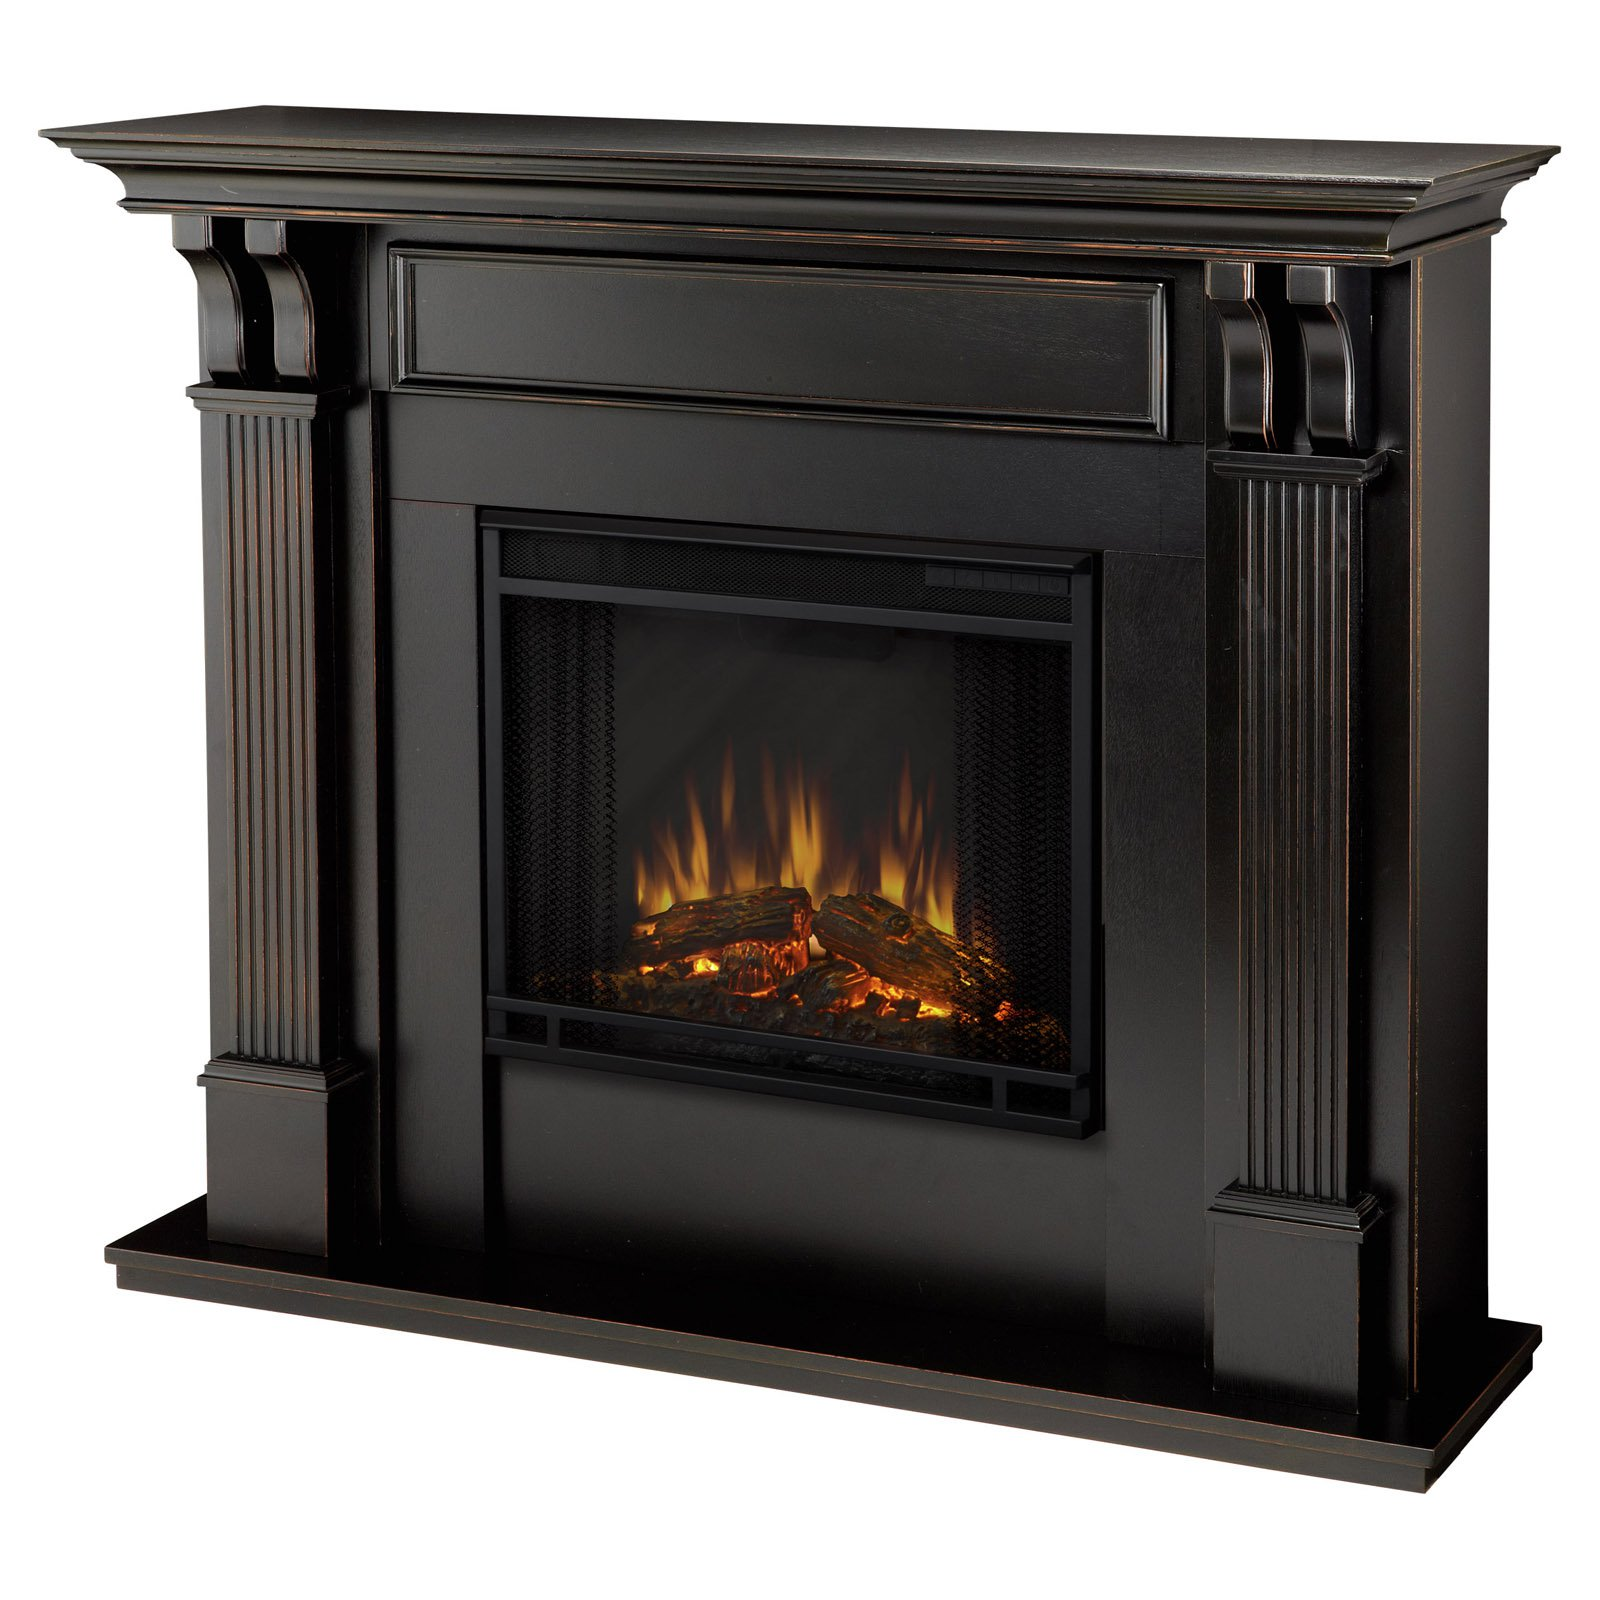 Real Flame Ashley Indoor Electric Fireplace Black Wash by Real Flame